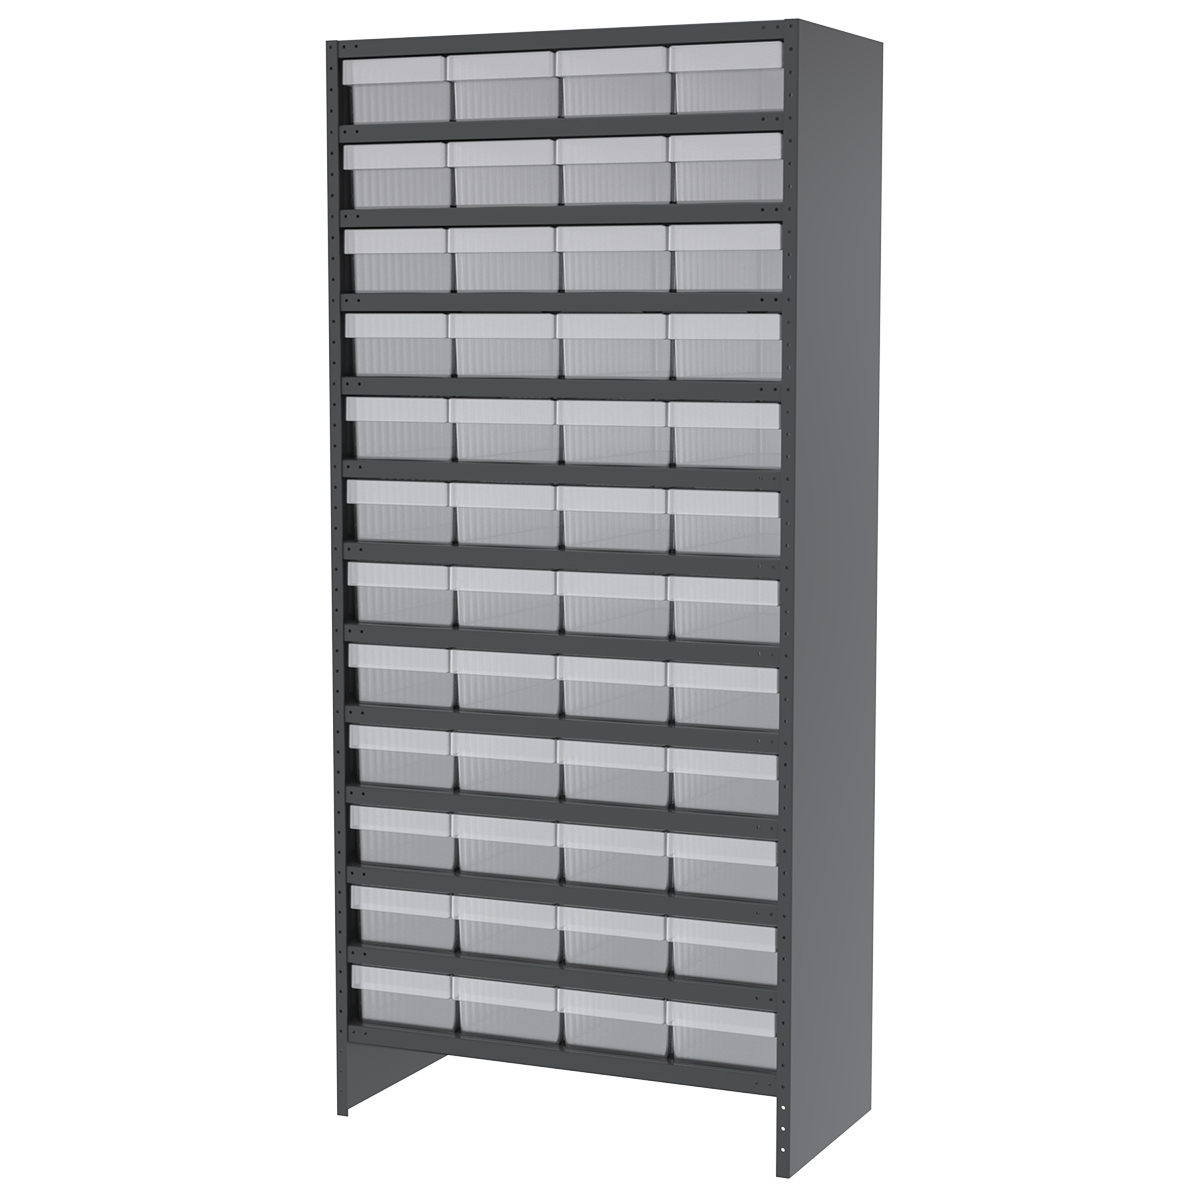 Enclosed Steel Shelving Kit, 18x36x79, 48 AkroDrawers, Gray/Clear.  This item sold in carton quantities of 1.